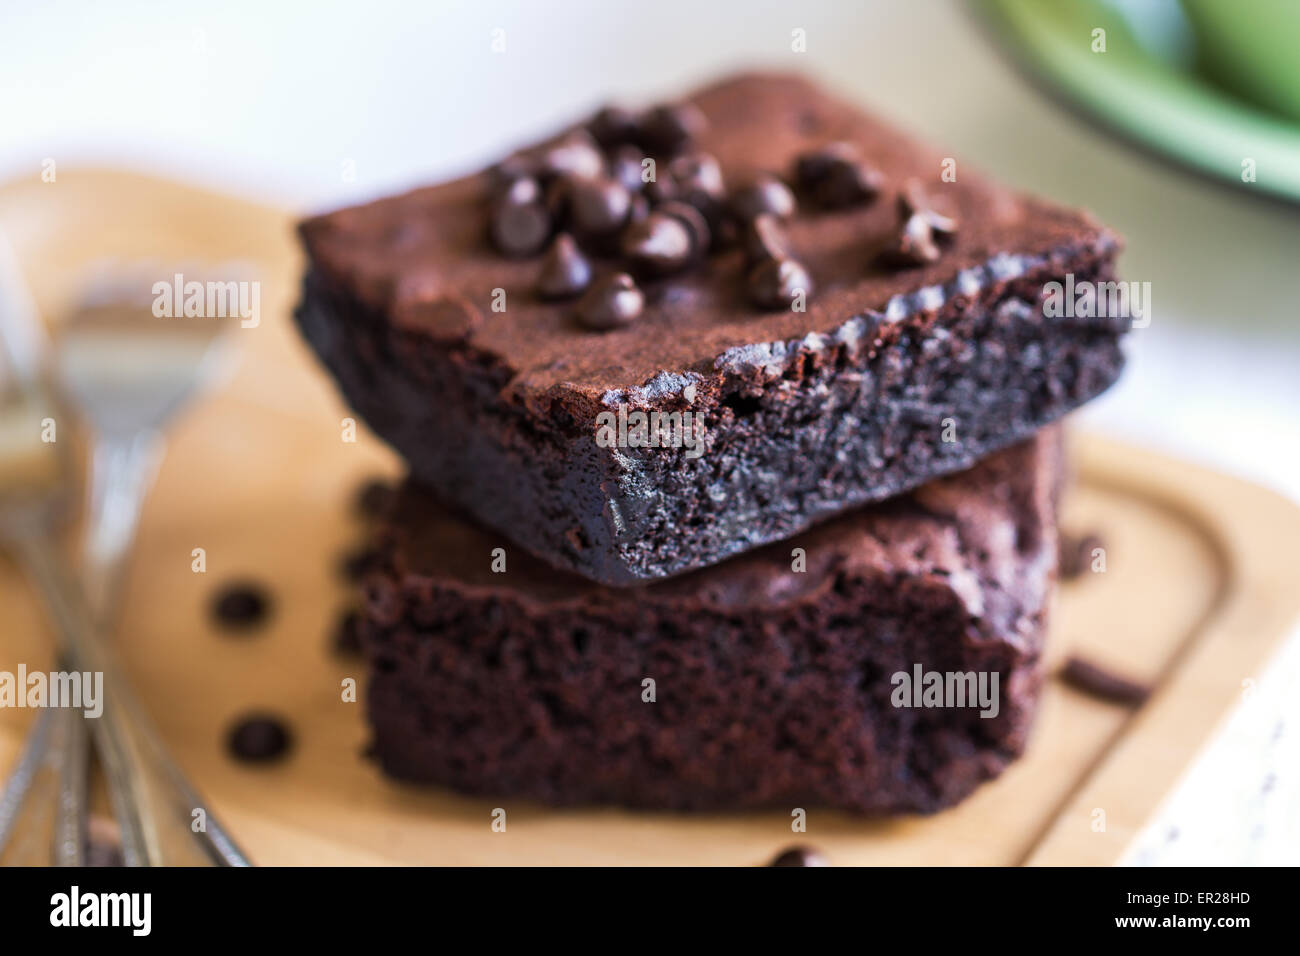 Homemade Brownies with chocolate chip by a cup of coffee - Stock Image